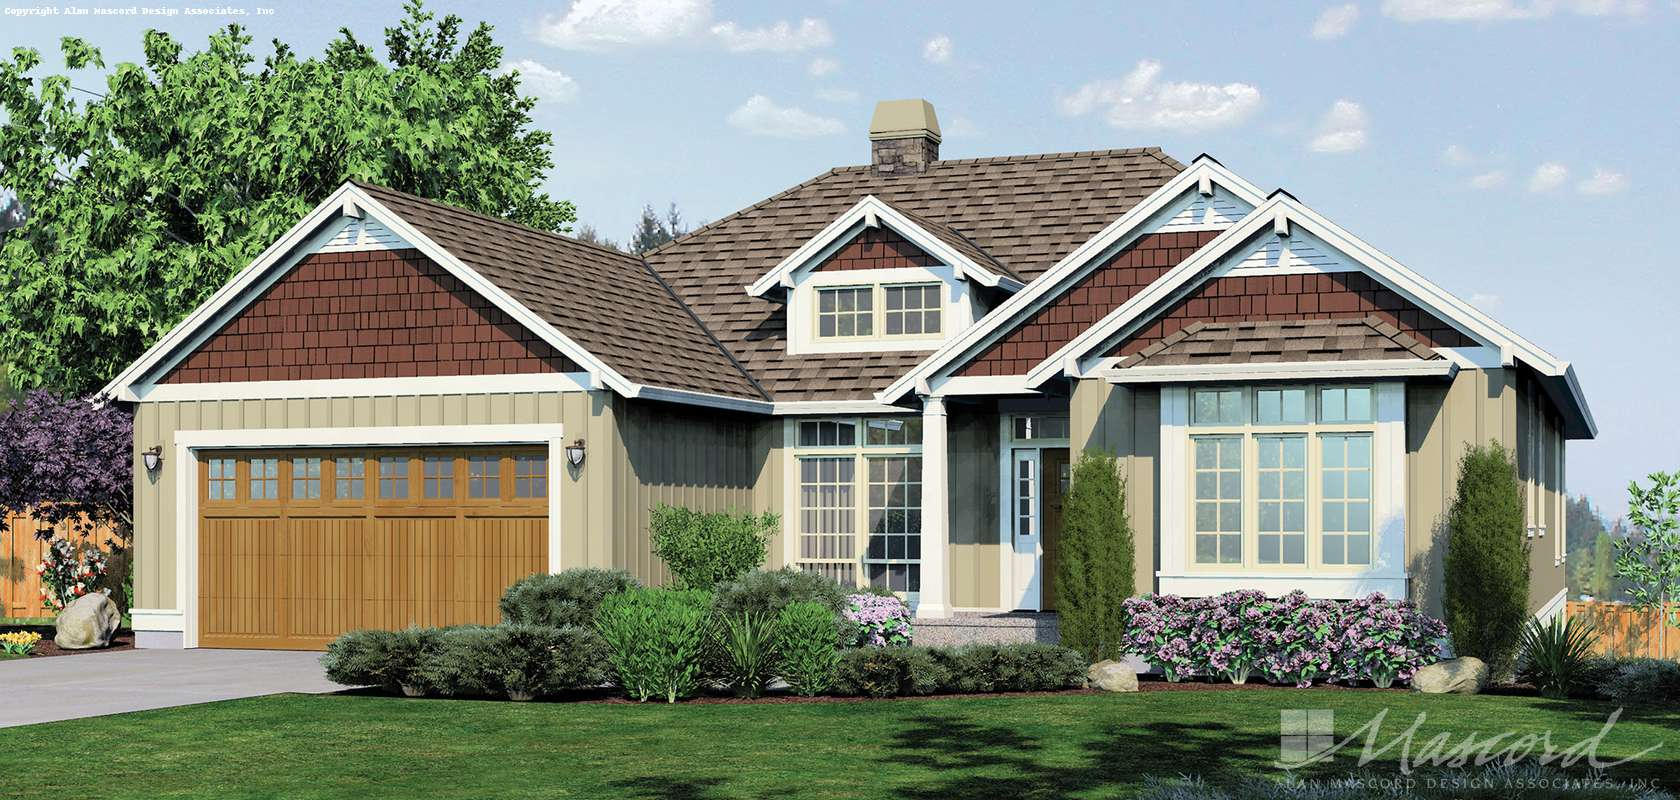 Mascord House Plan 1236: The Linden